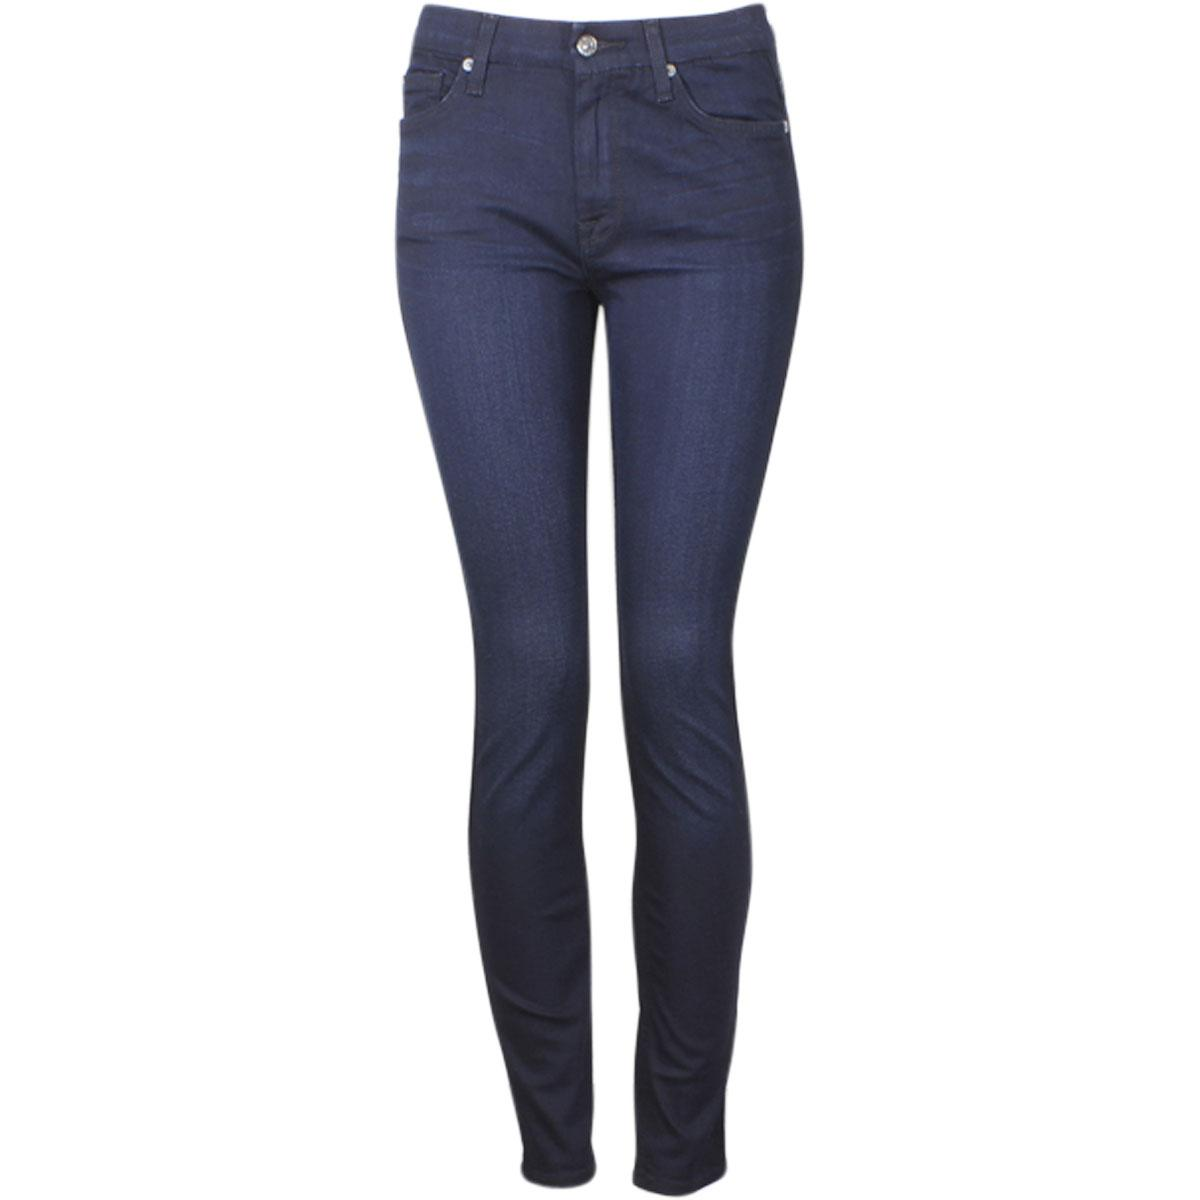 Image of 7 For All Mankind Women's (B)Air Denim The High Waist Skinny Jeans - Blue - 26 (1/2)